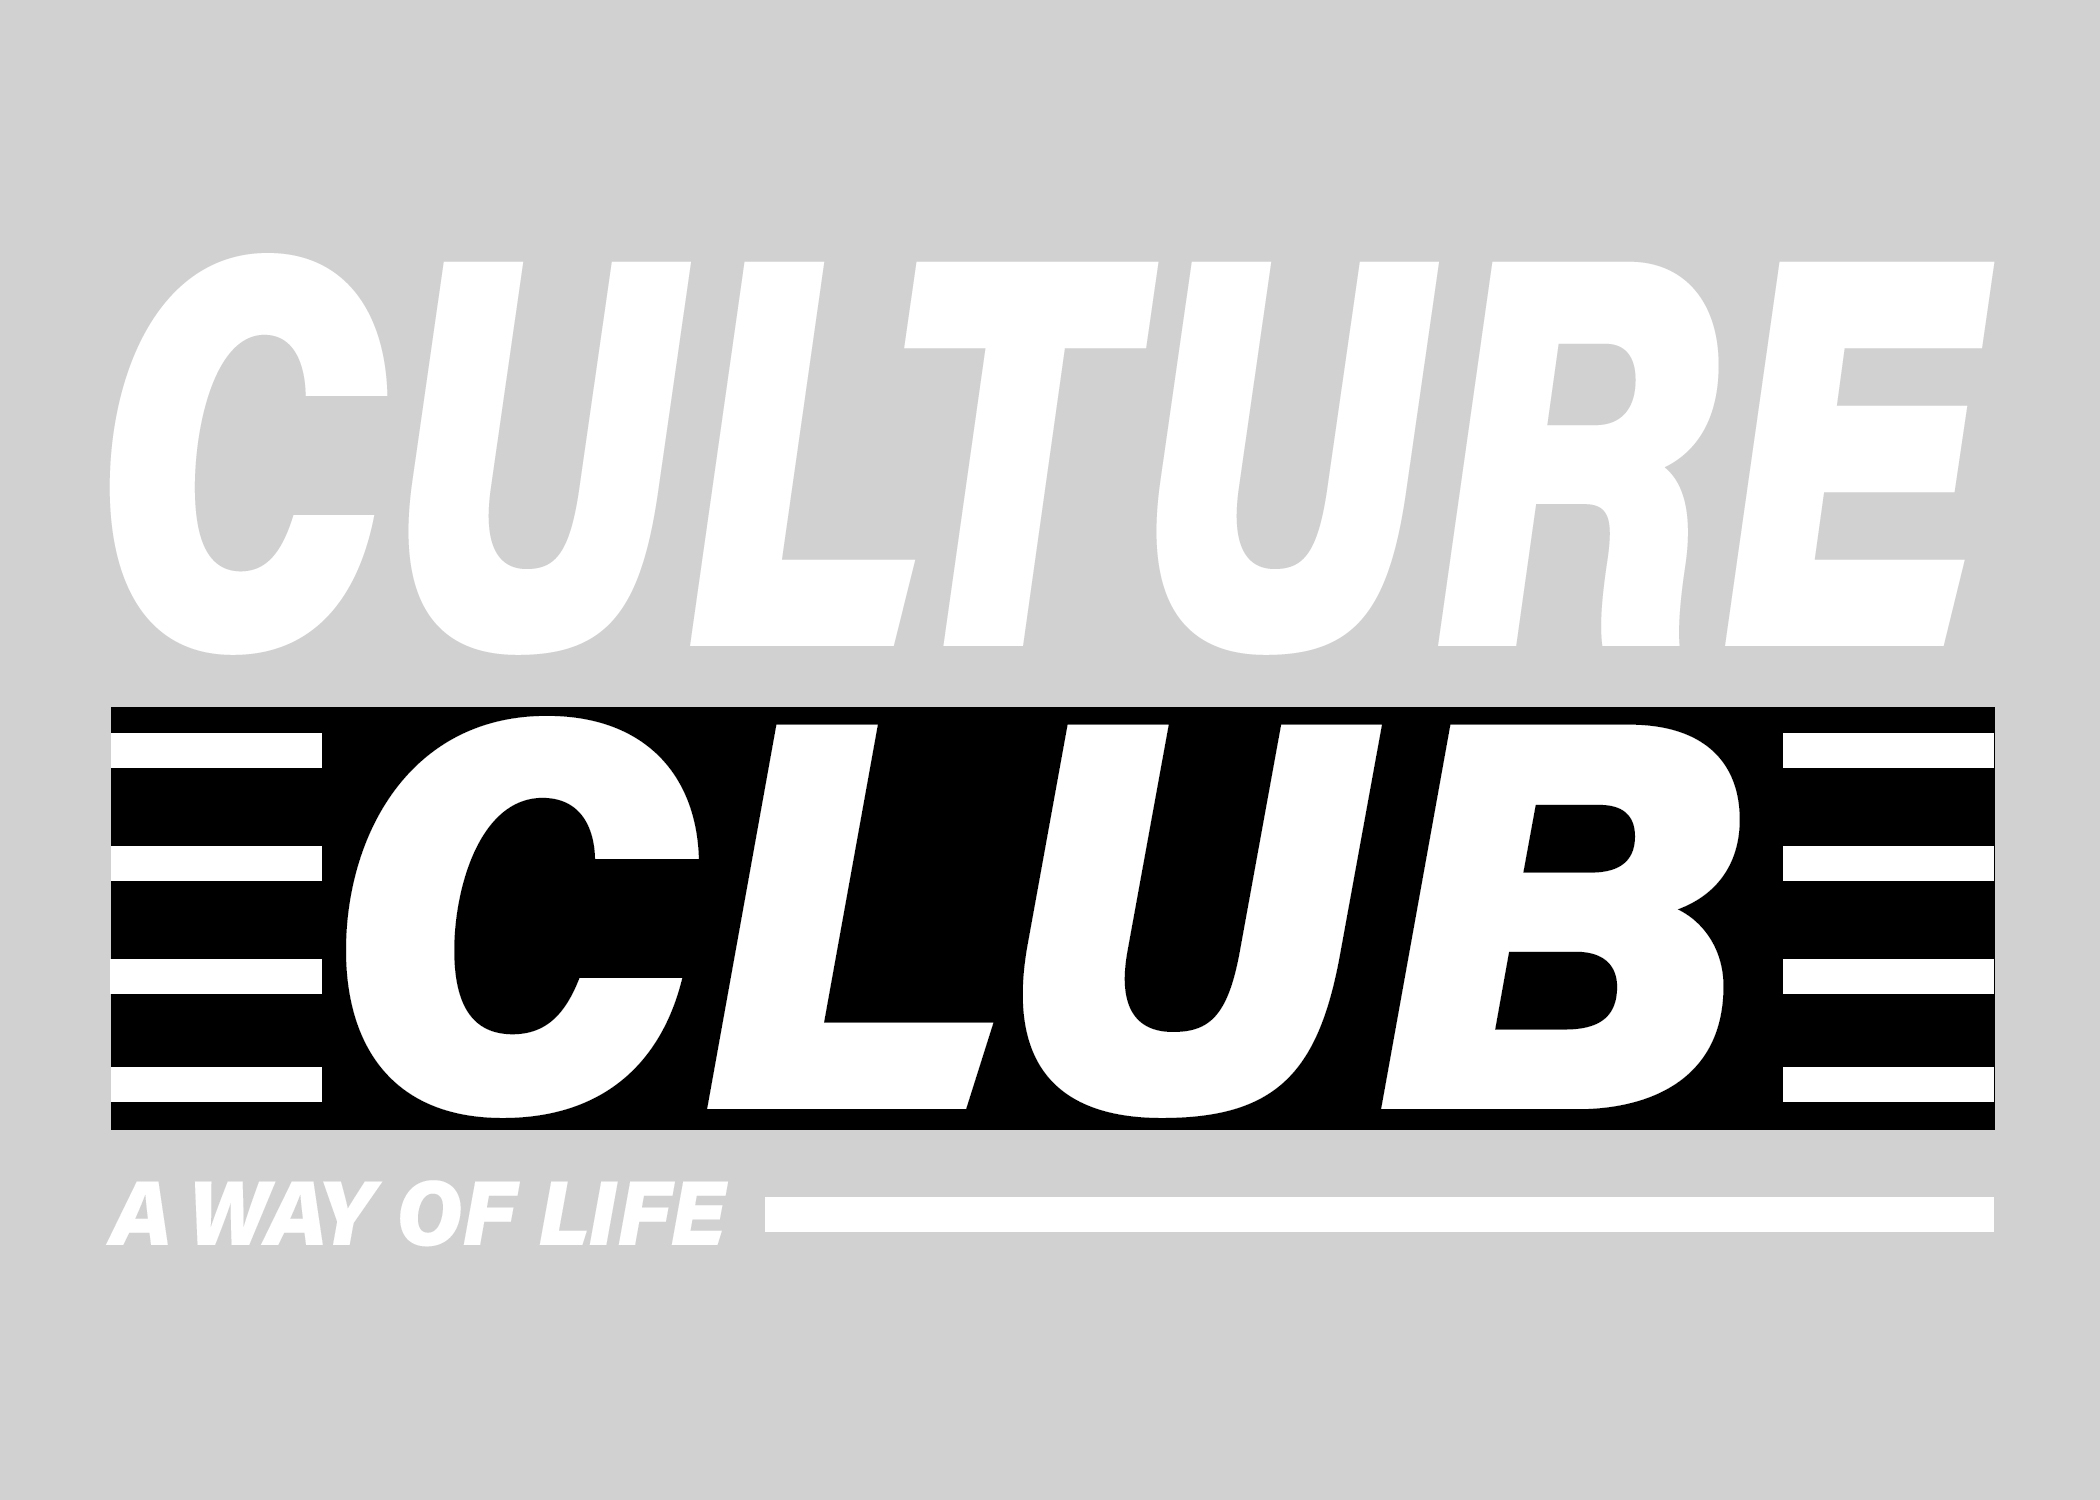 Culture Youth Design Concept 1 2.jpg